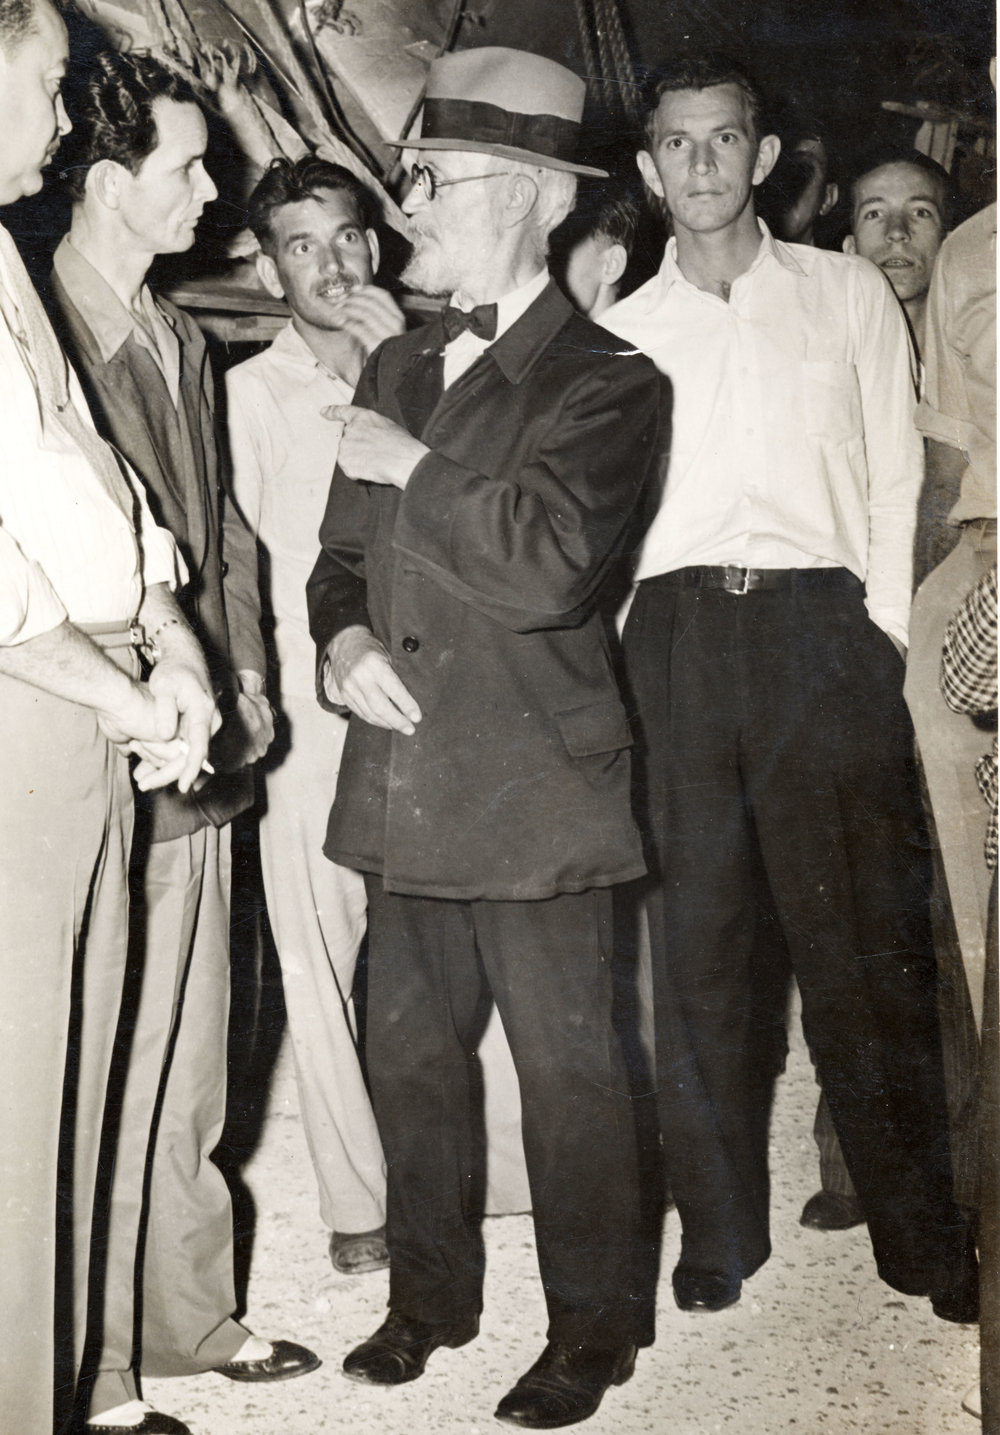 Von_Cosel,_Carl_Tanzler,_talking_to_Earl_Adams_and,_Bennie_Sawyers_on_the_left_in_1940._Photo_Gift_Clarke_Means.jpg